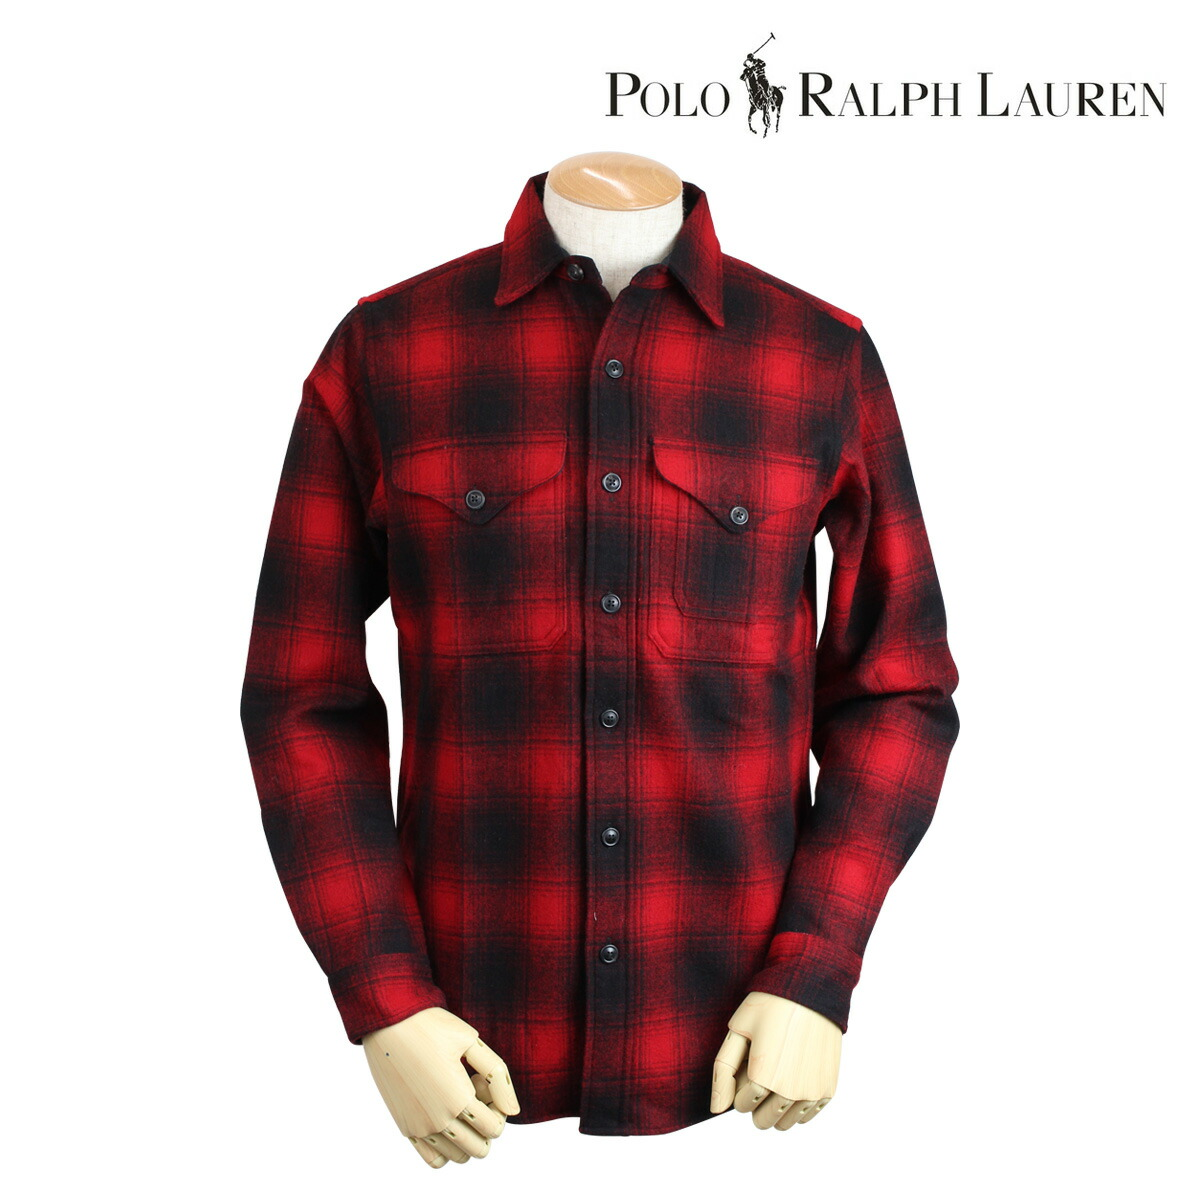 ... Ralph Lauren\u0026quot;, became famous in ties and polo shirts and sportswear. In the classic line that focuses on American-British model incorporating American ...